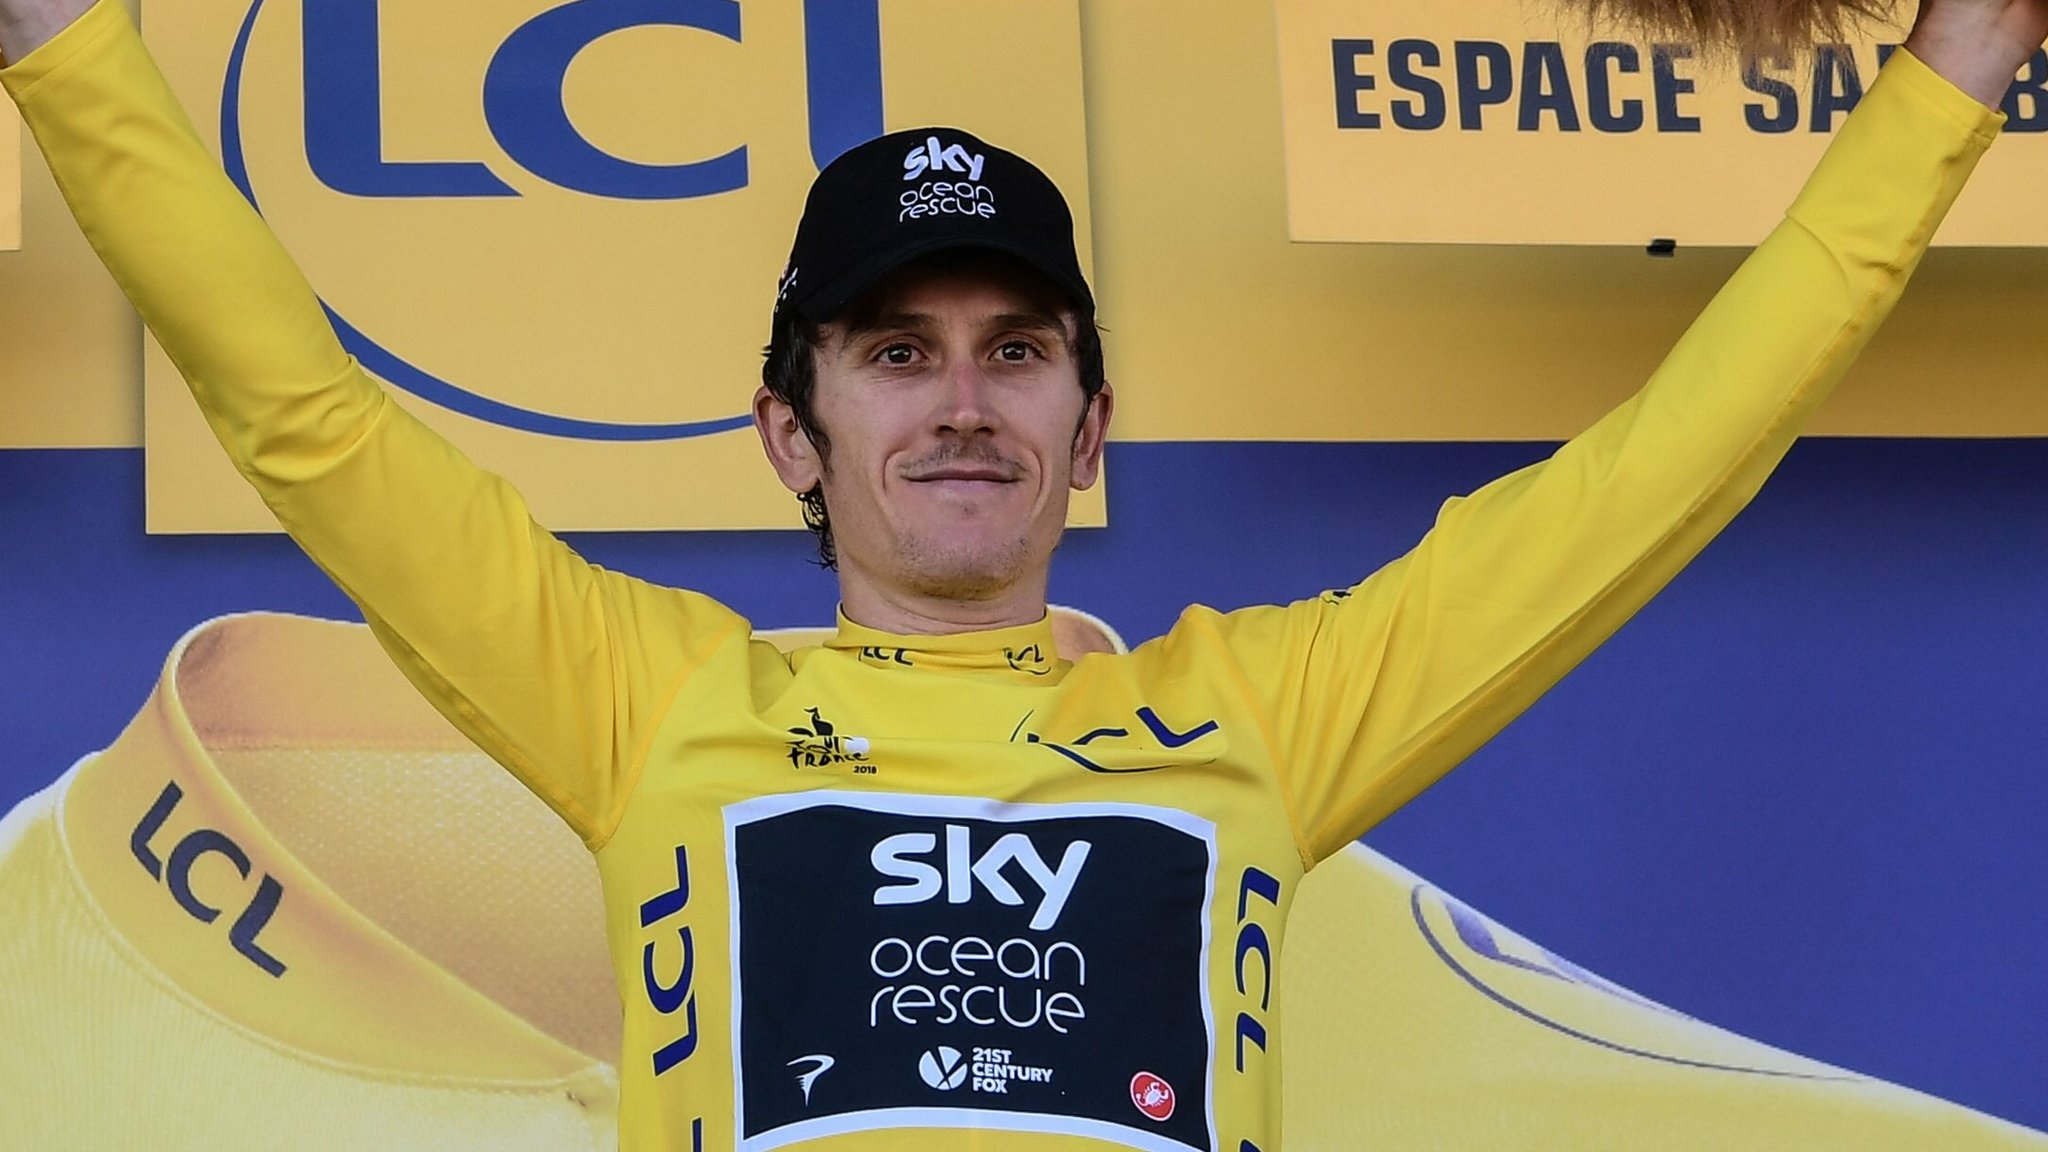 Team Sky's Thomas wins stage 11 to take Tour lead